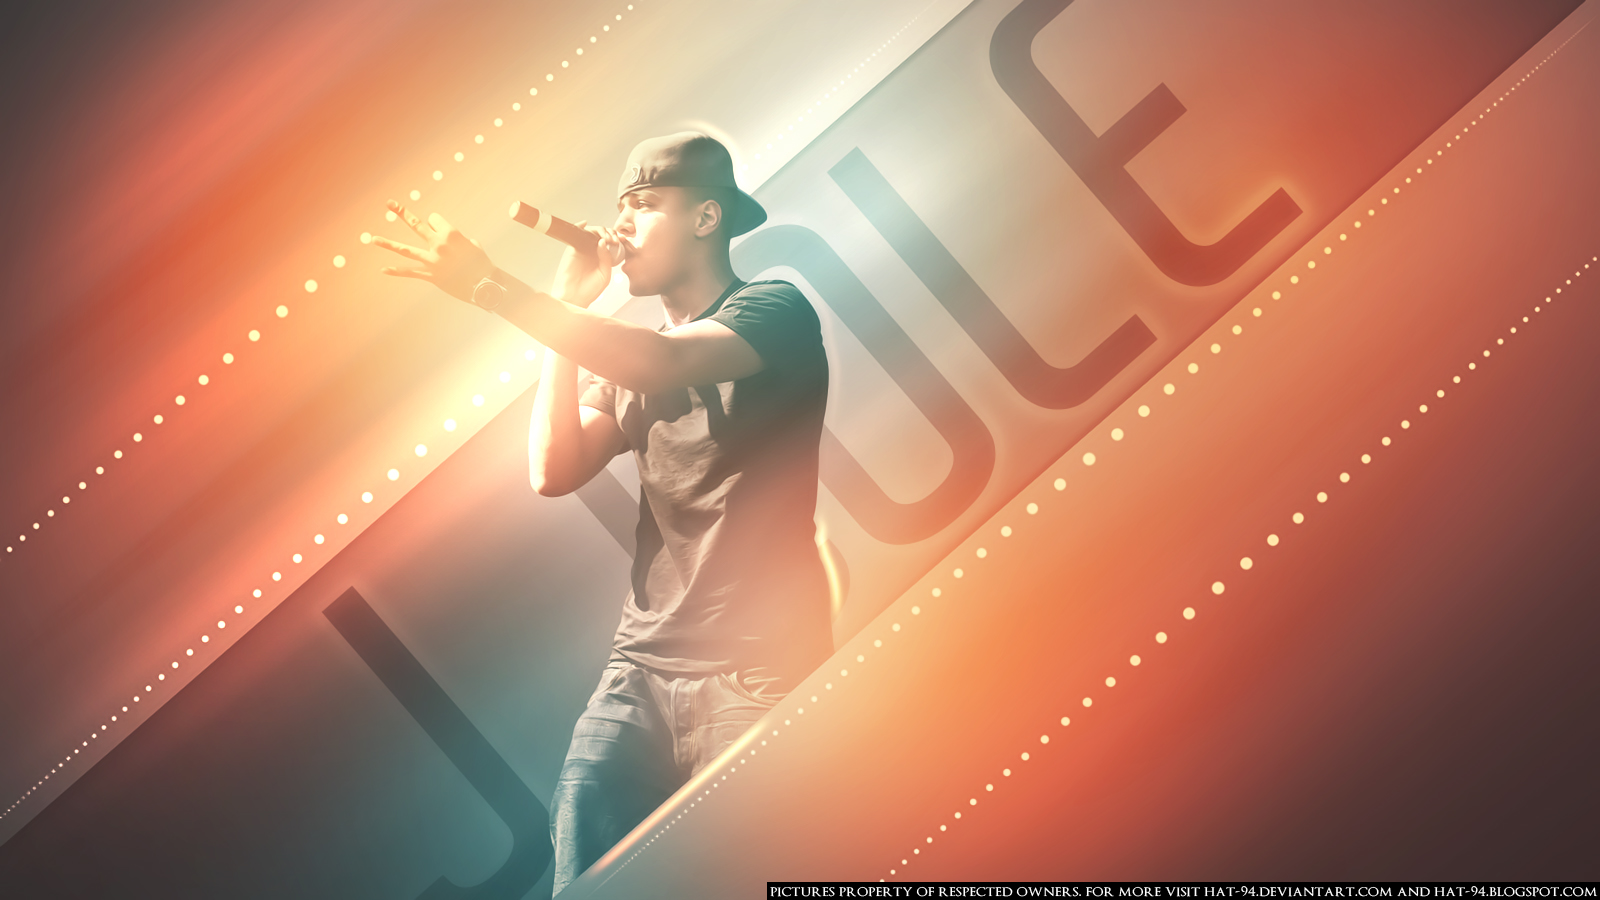 cole wallpaper 3 by hat 94 customization wallpaper people males 1600x900